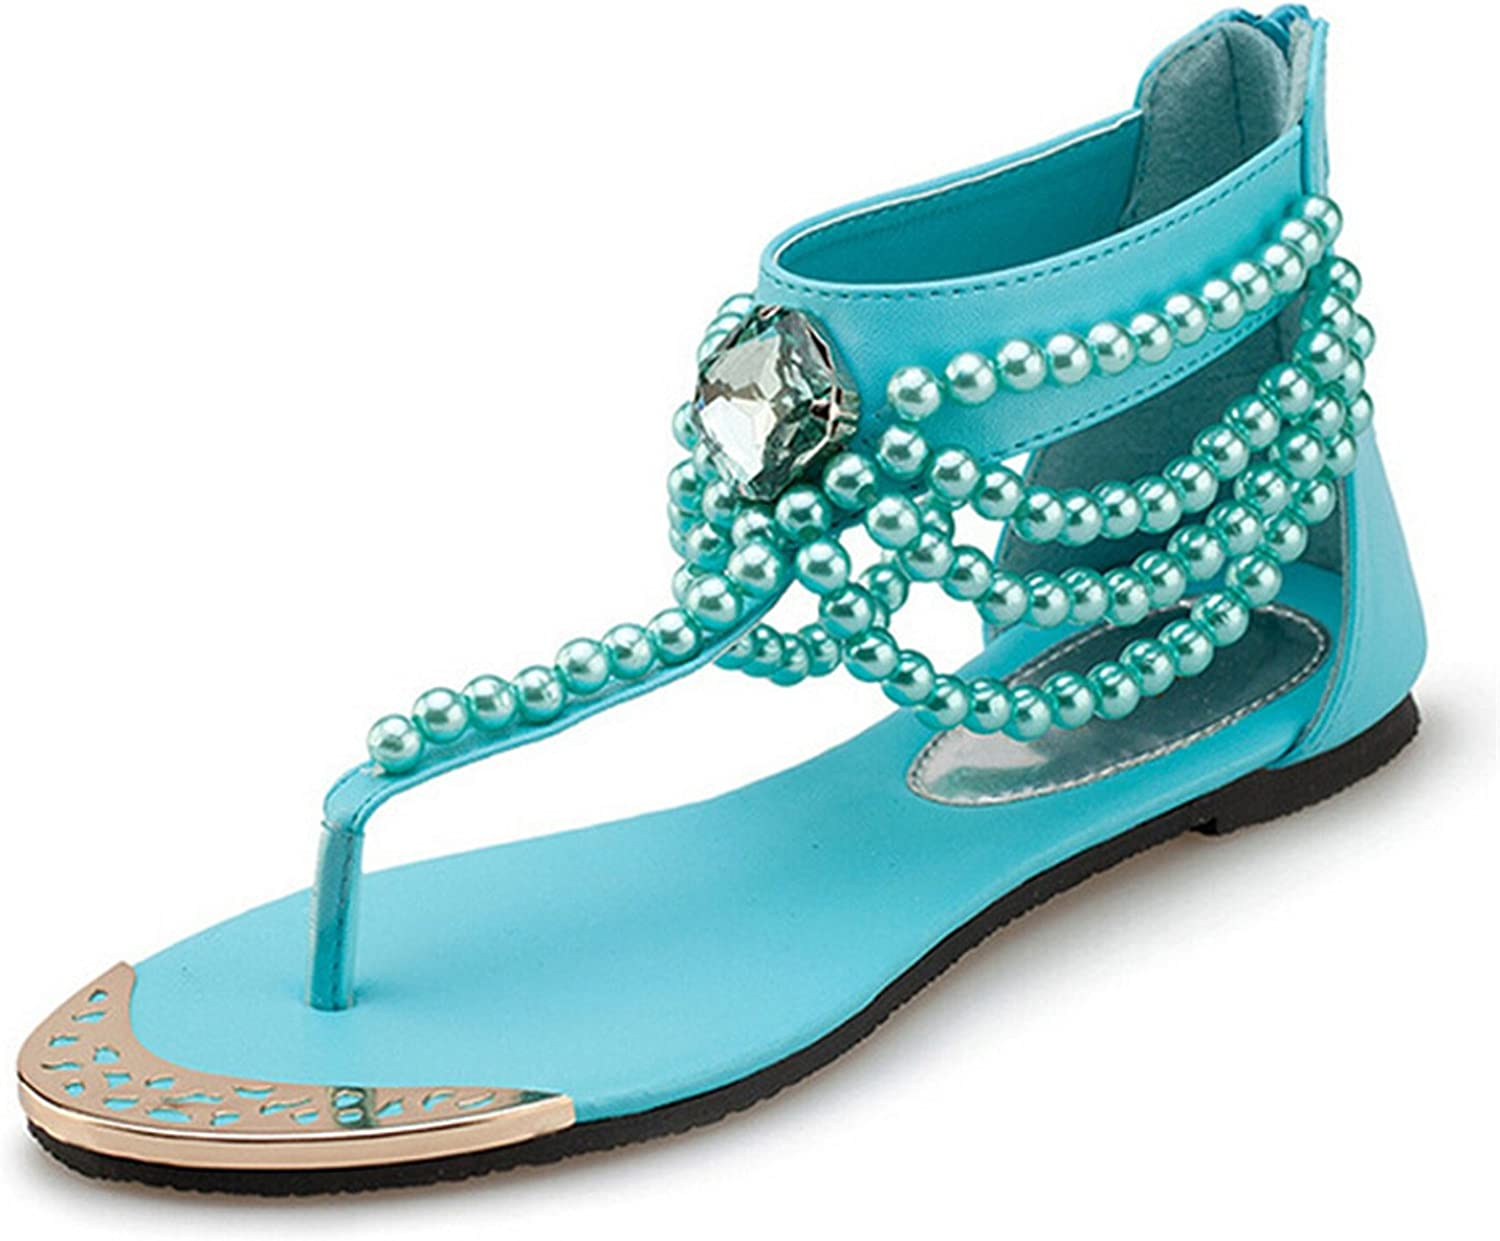 Robert Westbrook Bling Beading Sandals T-Strap Flip Flops Summer Style Flats shoes Woman Rhinestone Pearl Casual Women shoes Xwznew